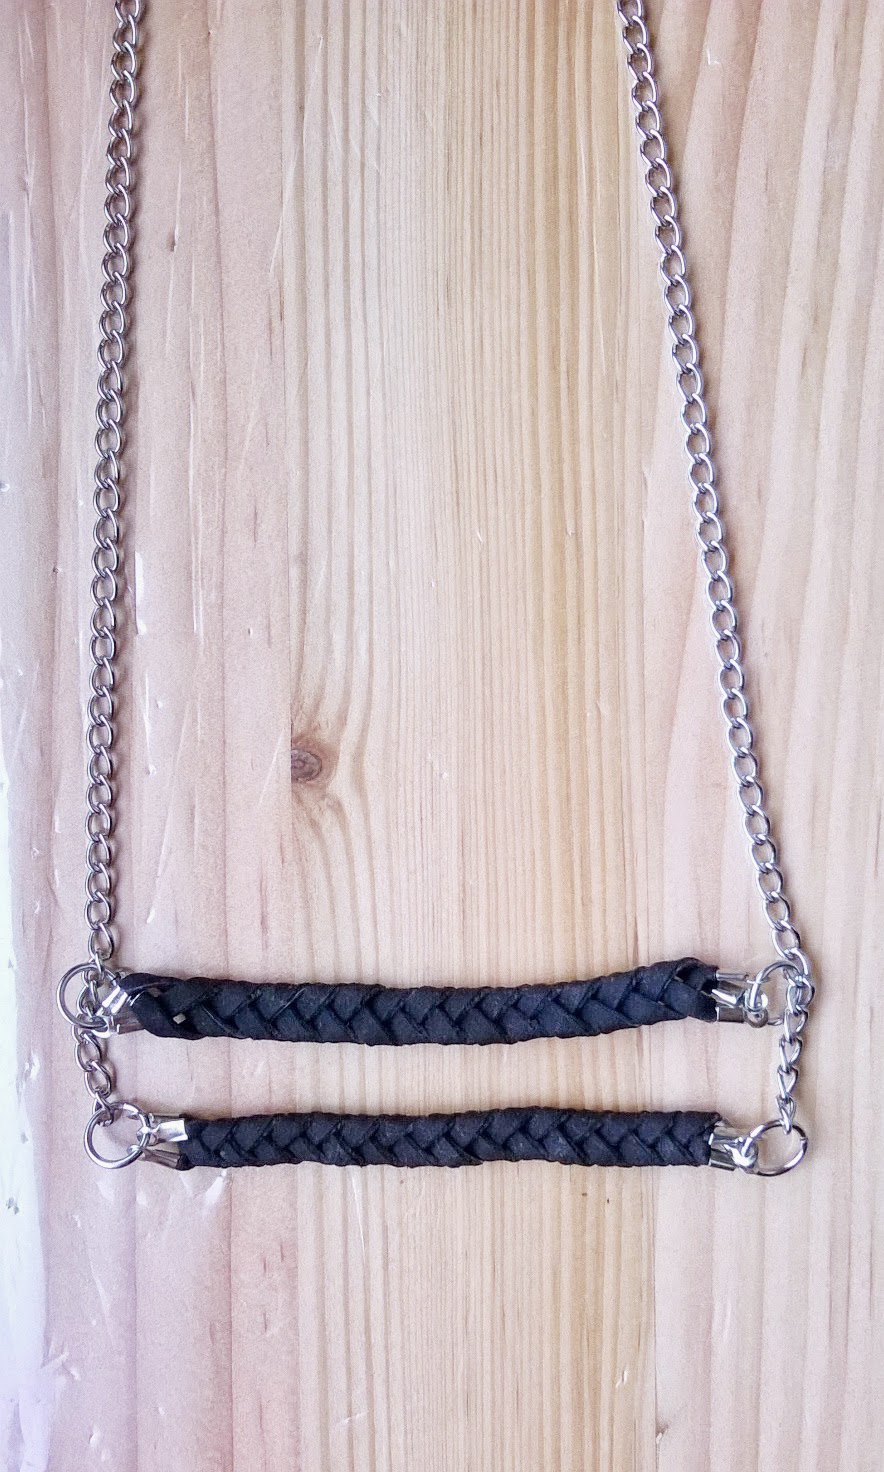 how to make a braided cord necklace